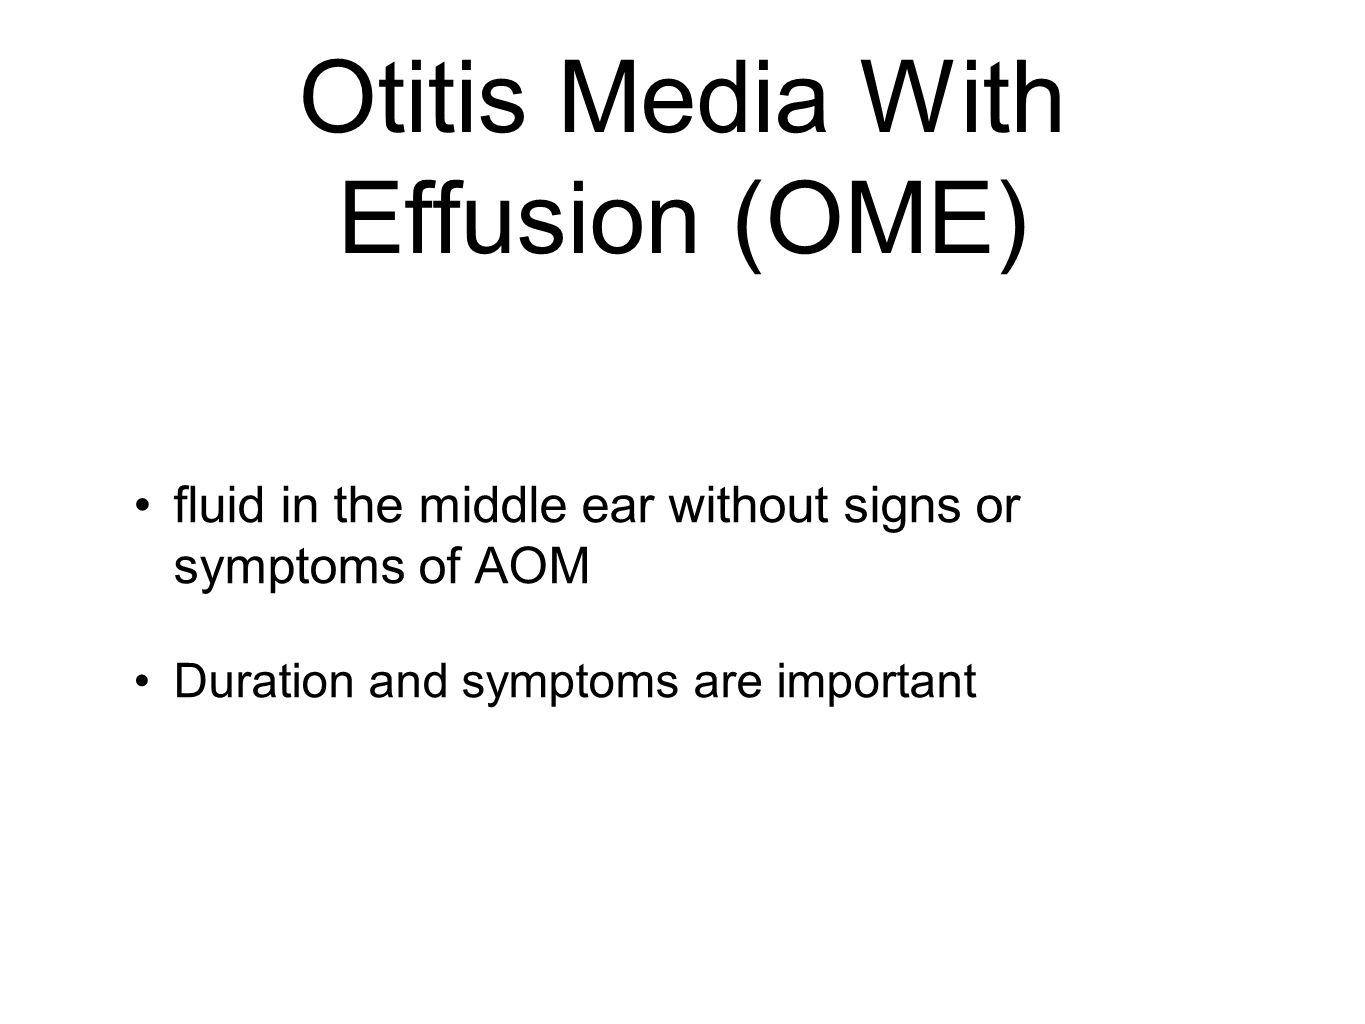 Otitis Media With Effusion (OME)